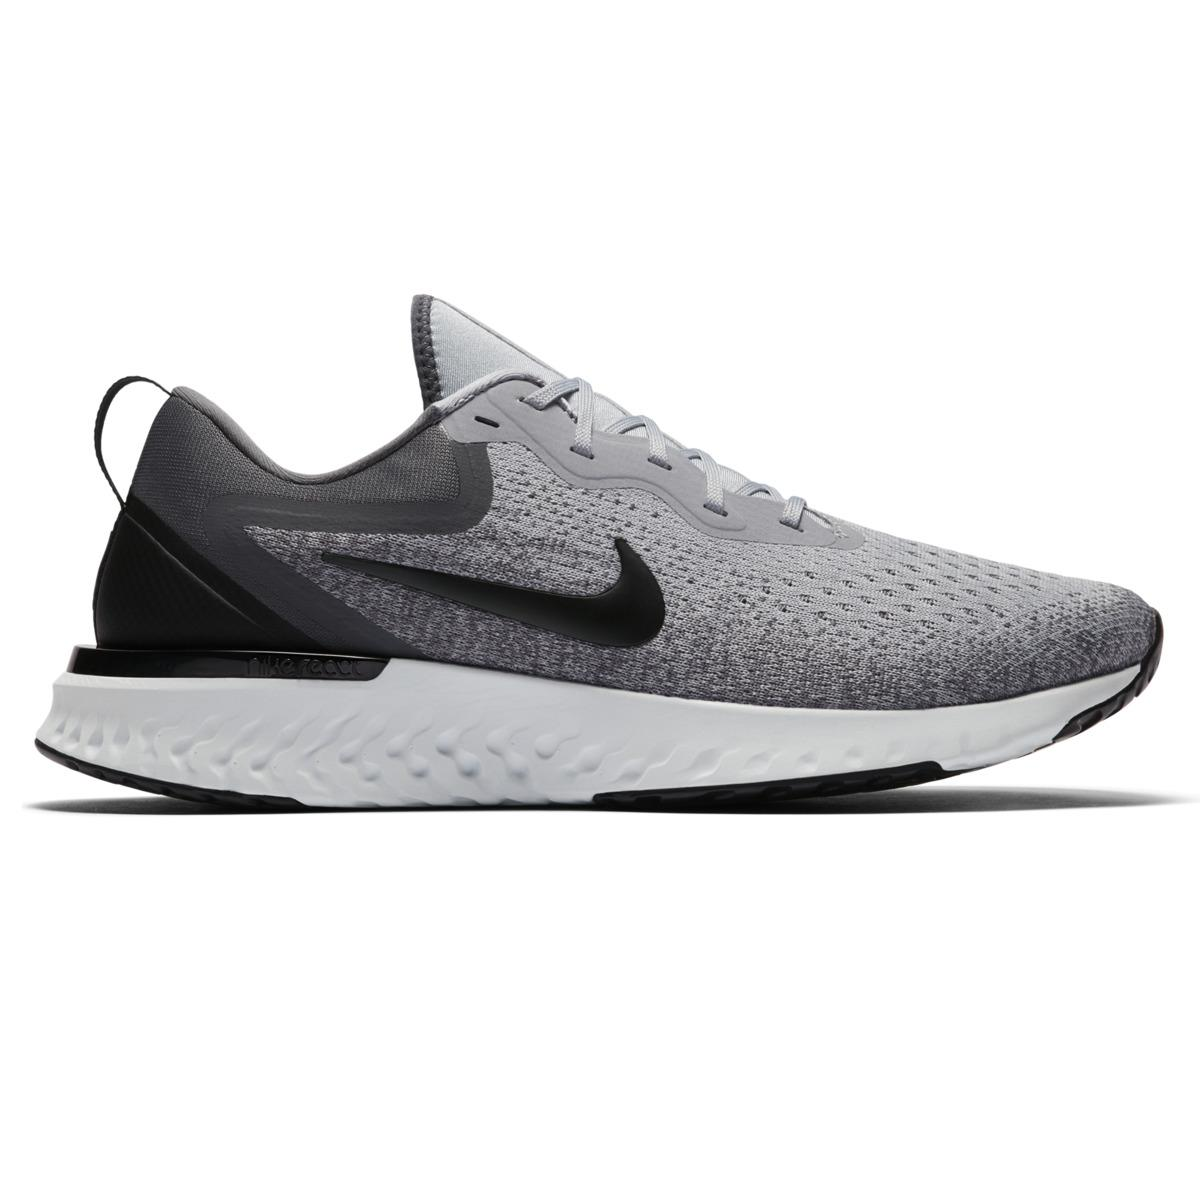 0fa63651d8a3 Nike Odyssey React Running Shoes in Gray for Men - Lyst